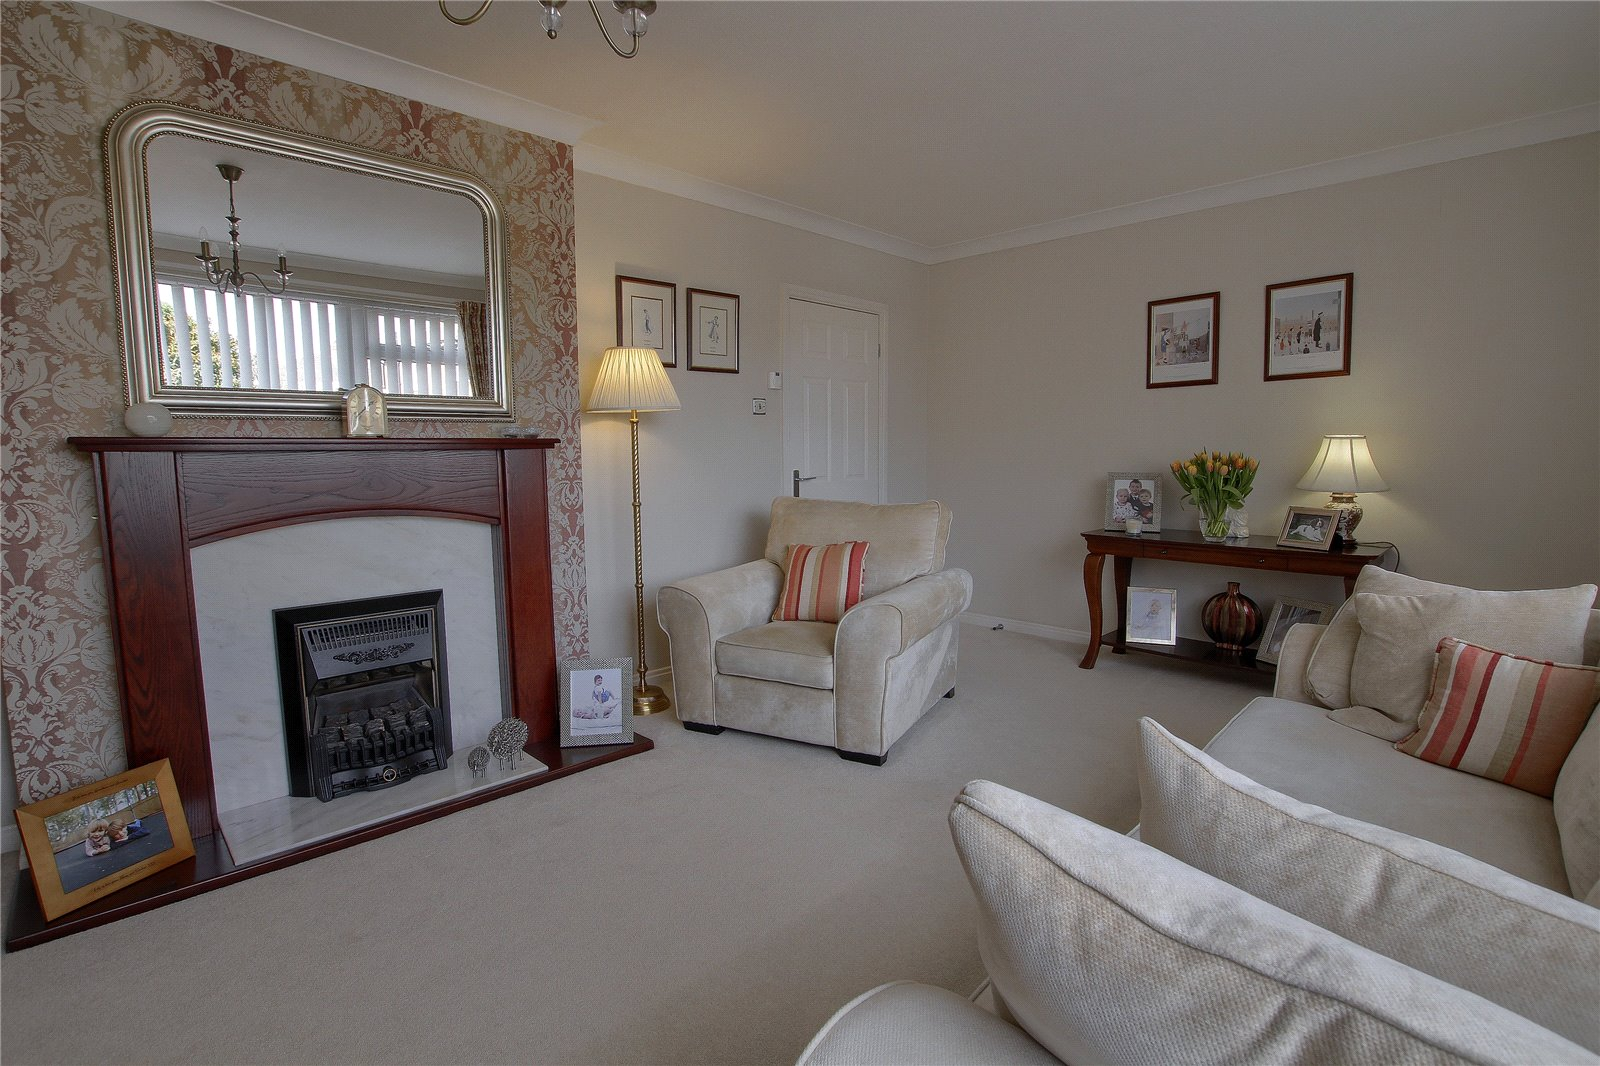 4 bed house for sale in Oldford Crescent, Acklam  - Property Image 2